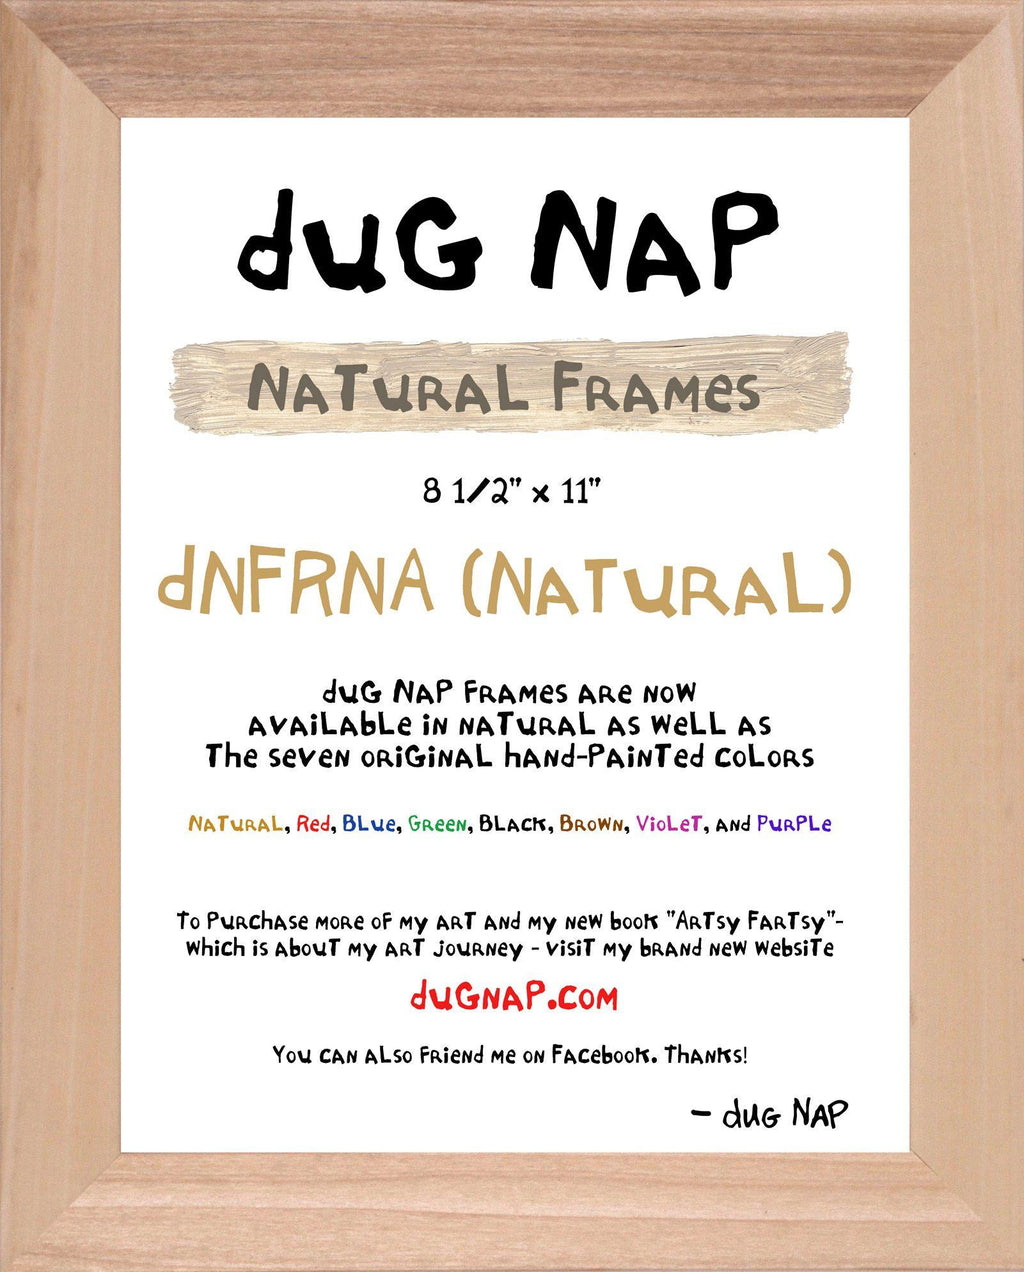 8.5 x 11 Frame - Natural - dug Nap Art